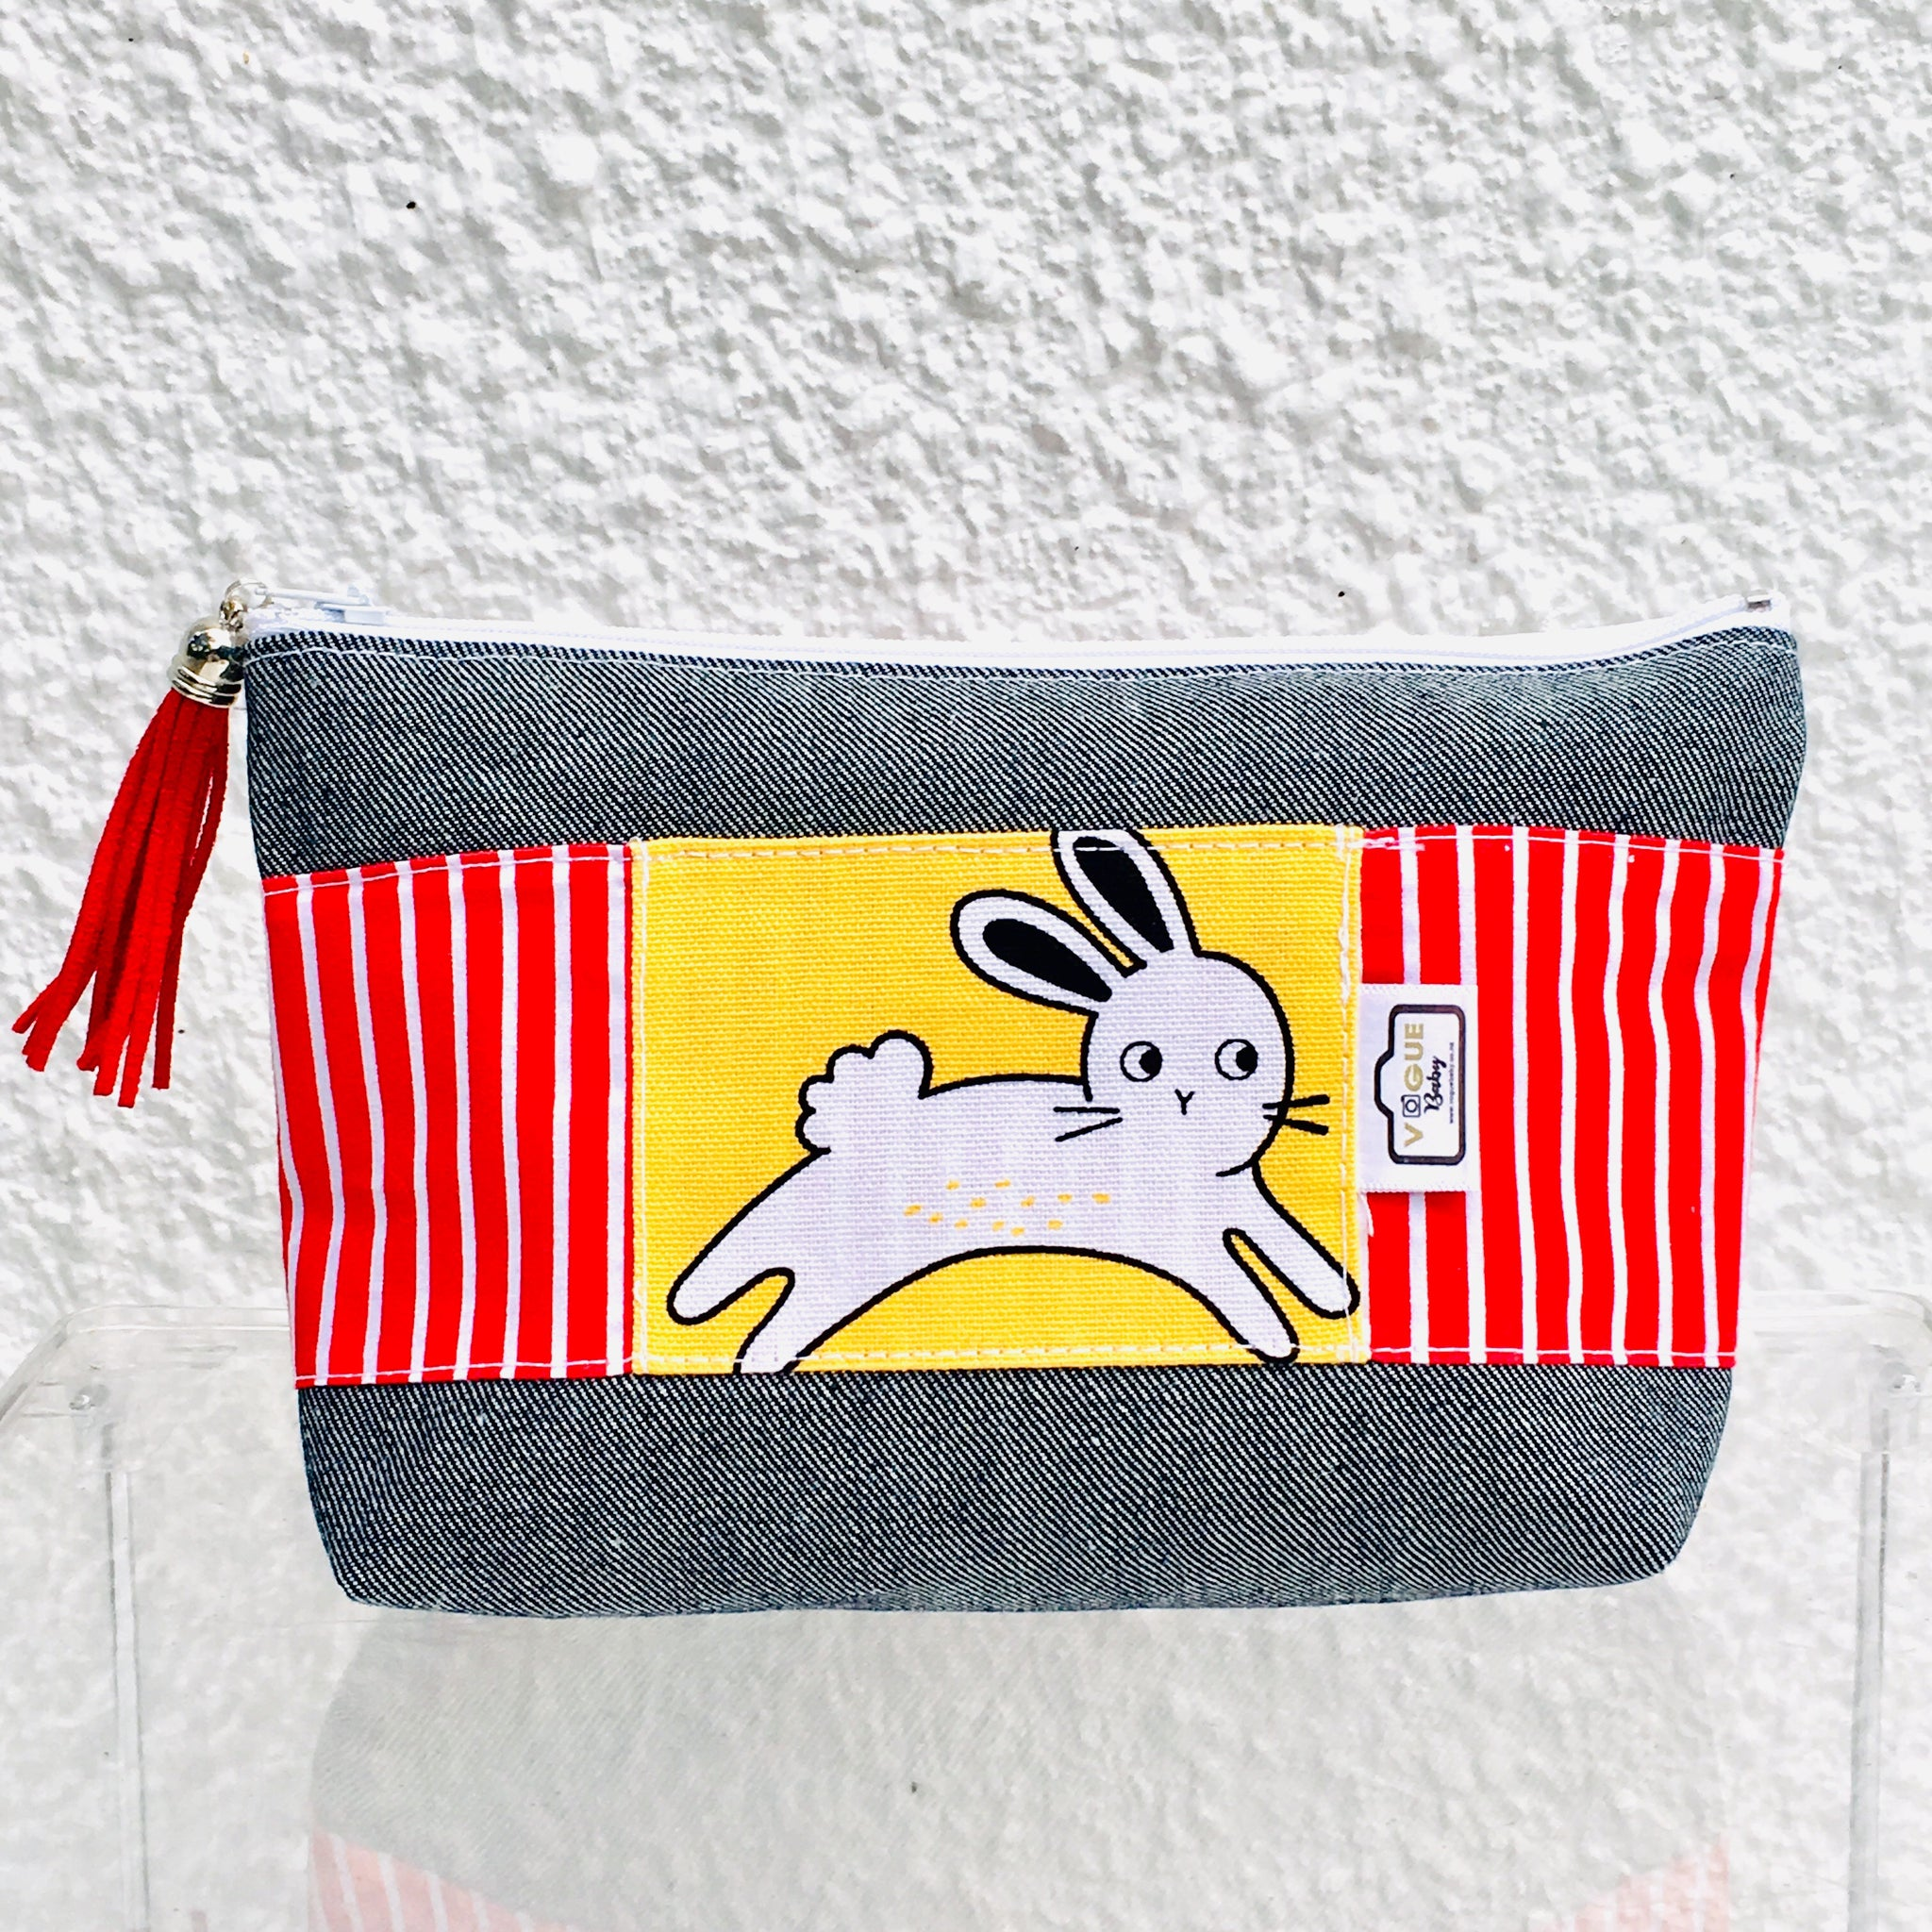 Hopping Bunny Purse